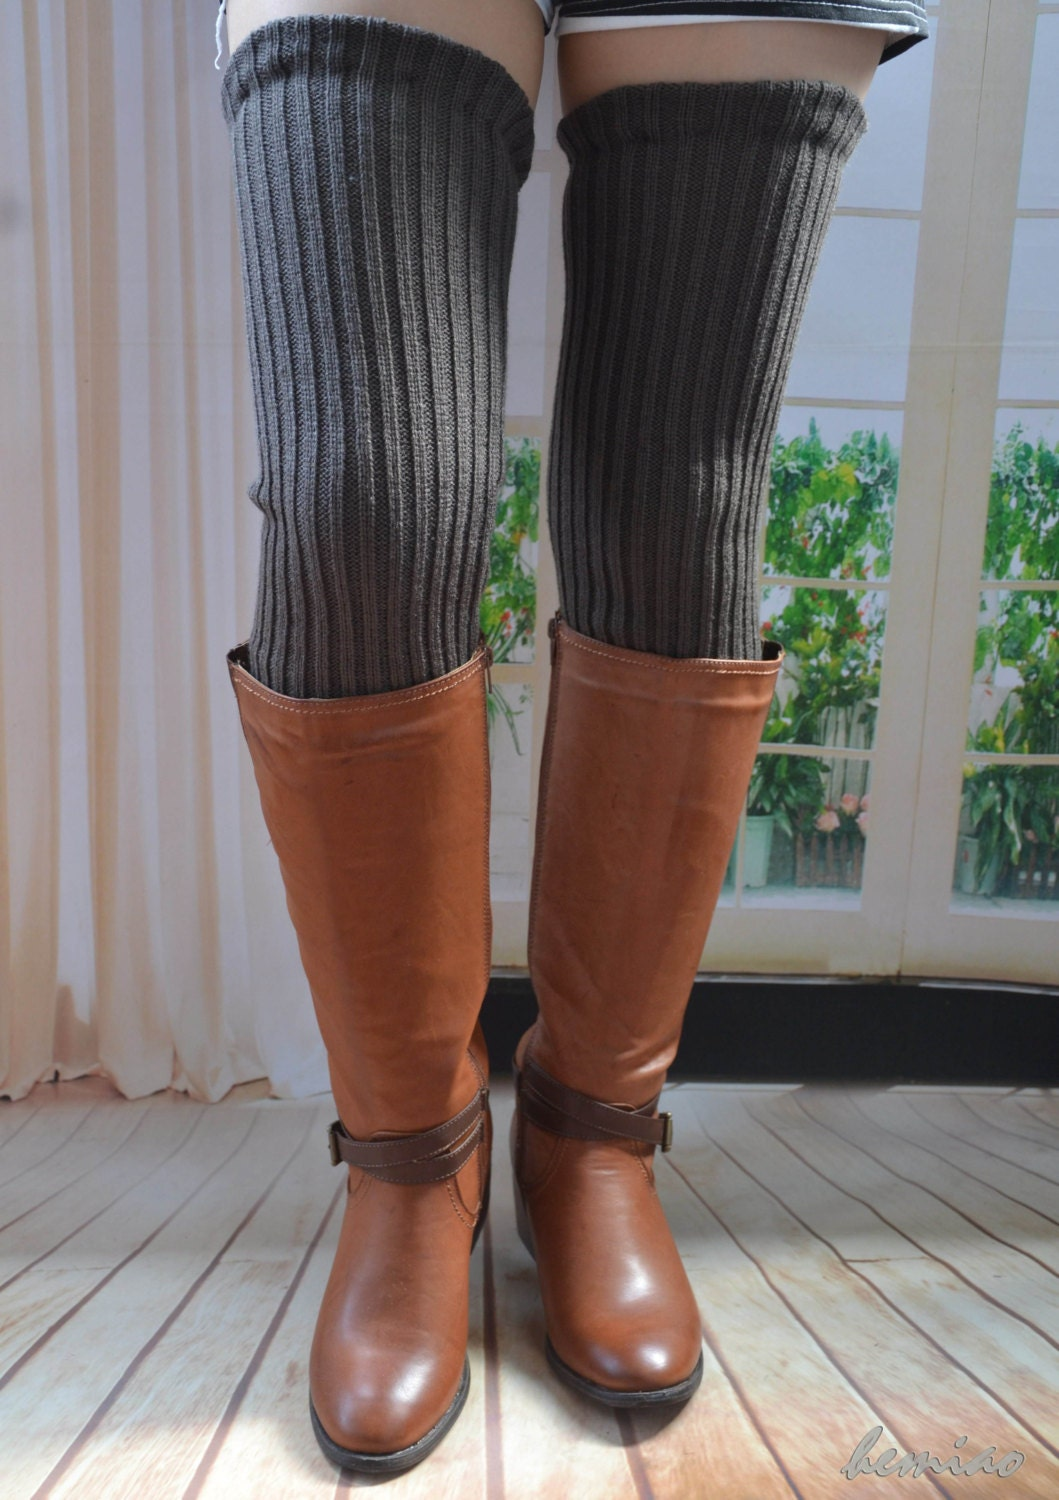 Knitting Pattern For Thigh High Leg Warmers : Knit thigh high leg warmers Knit over knee long Leg Warmers